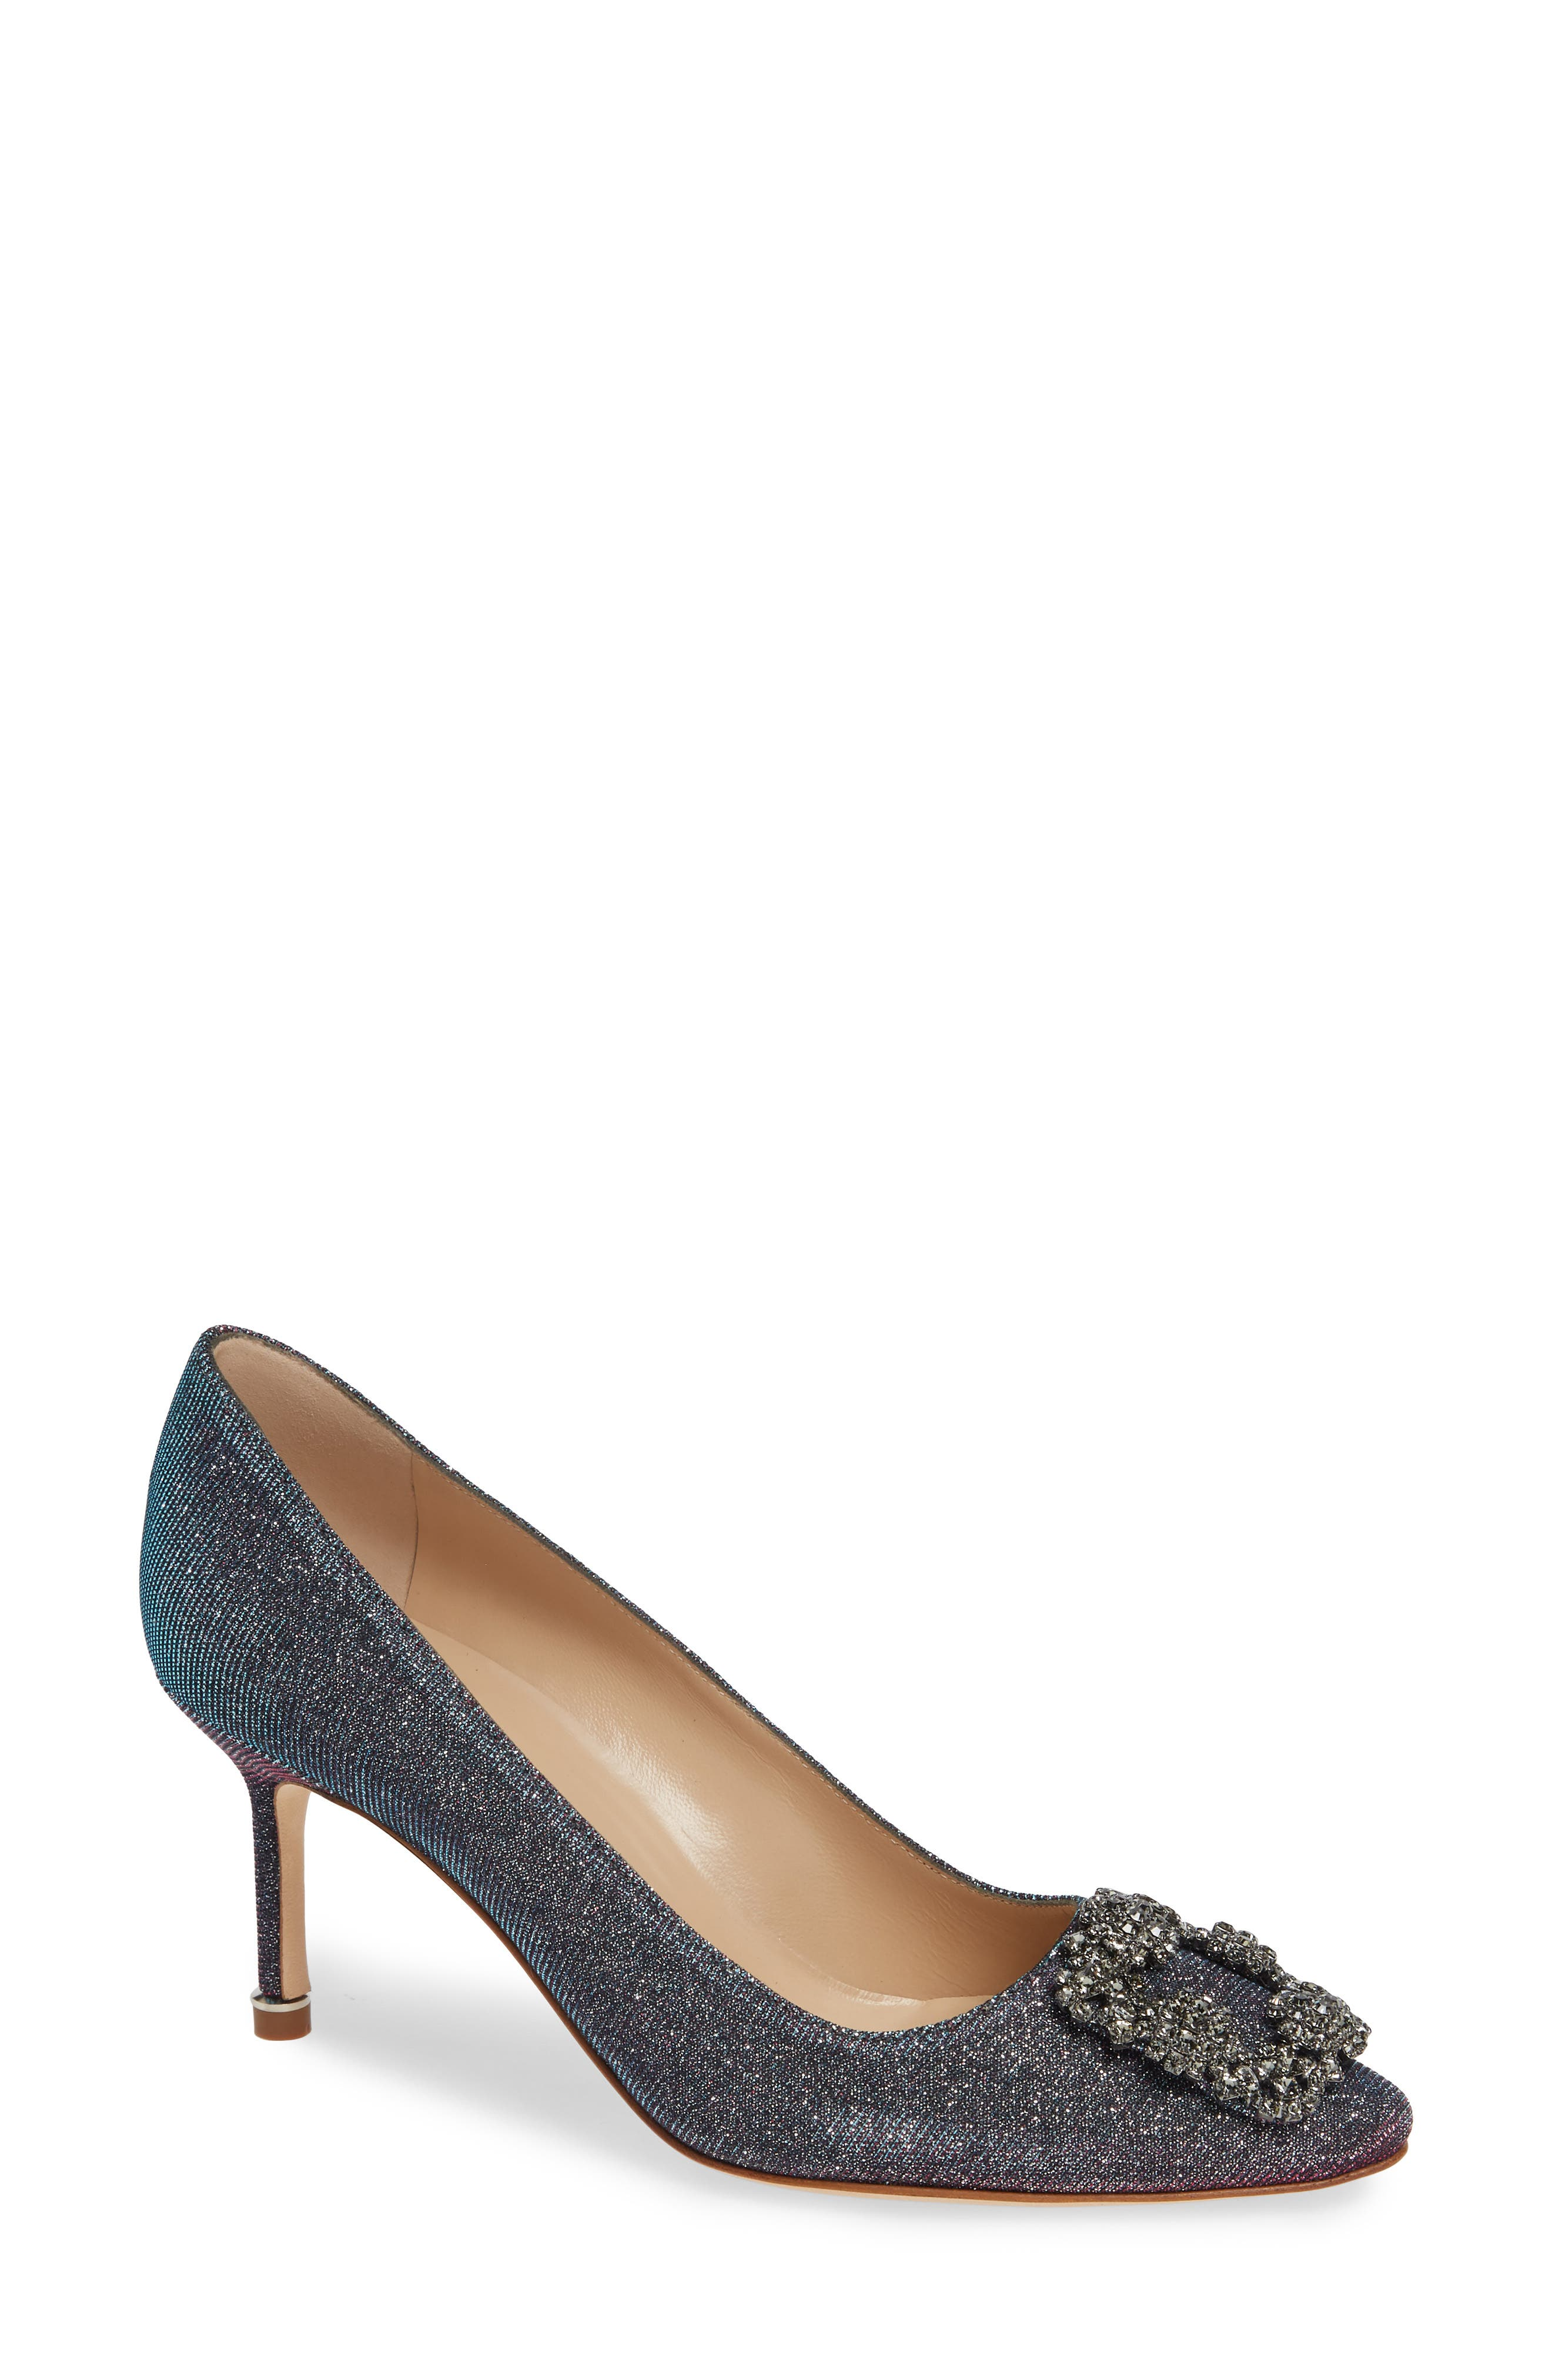 MANOLO BLAHNIK Hangisi Pump, Main, color, MIDNIGHT BLUE